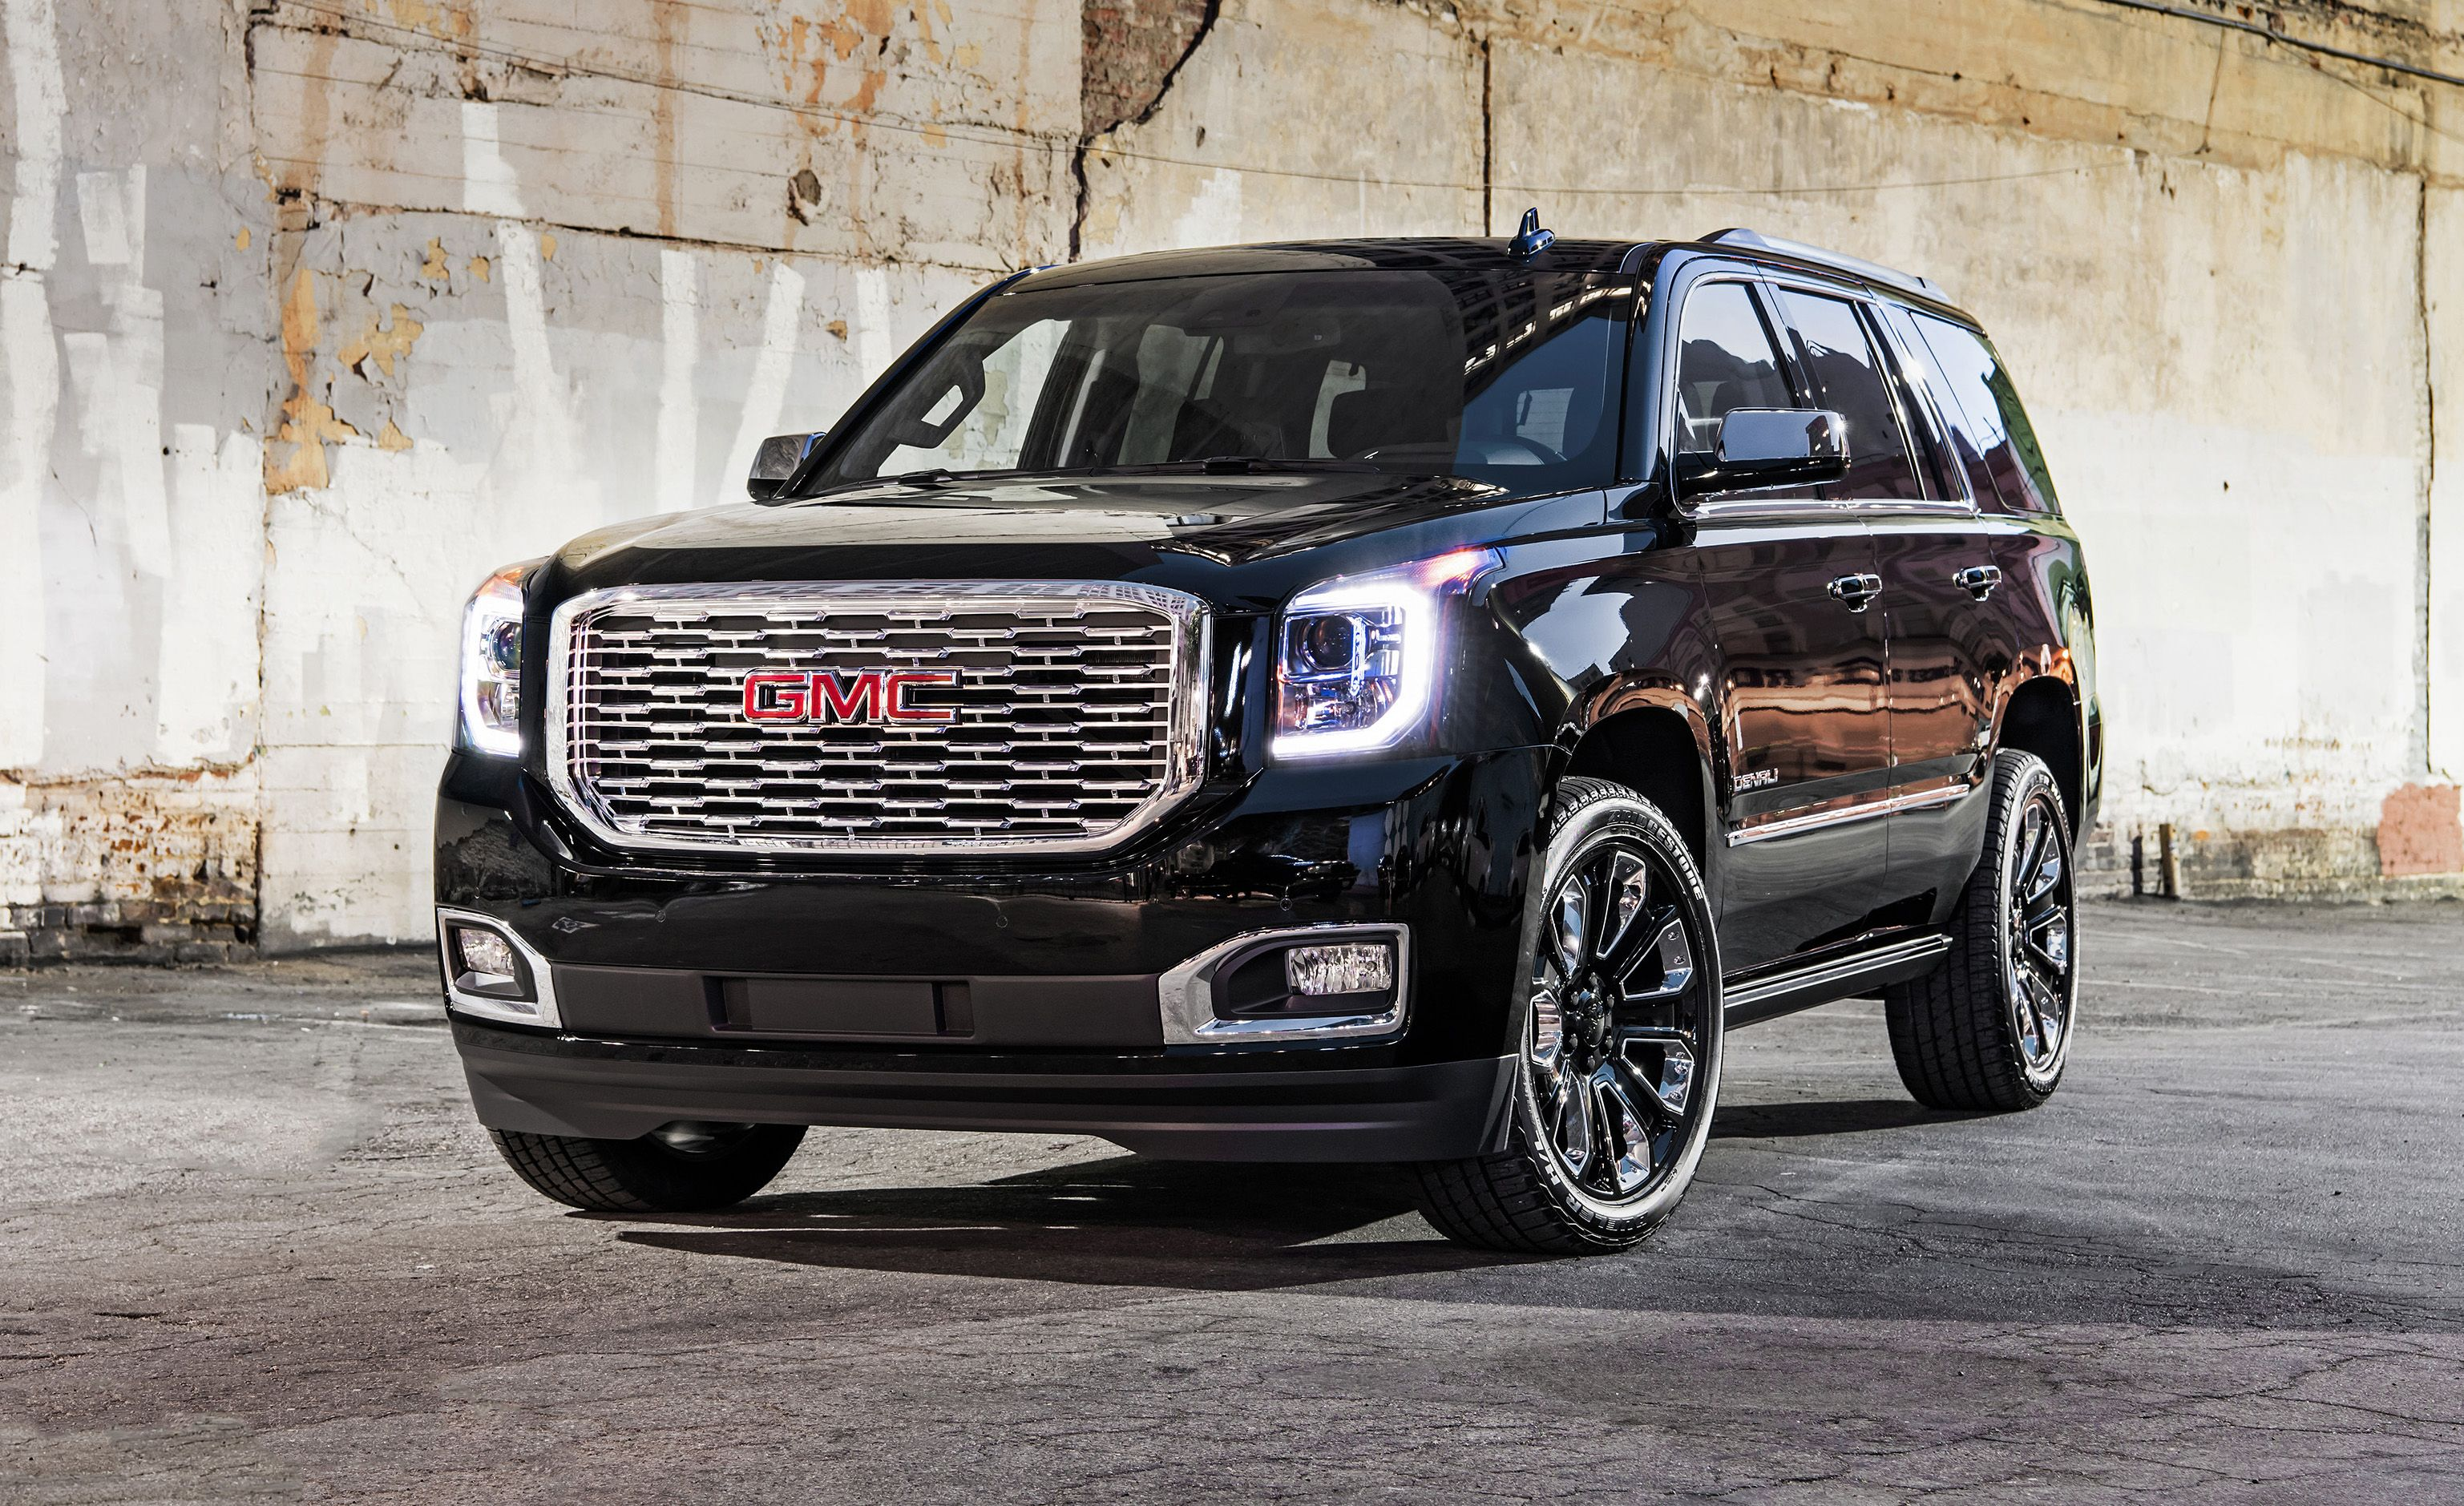 Every 2020 Full Size Suv Ranked From Worst To Best